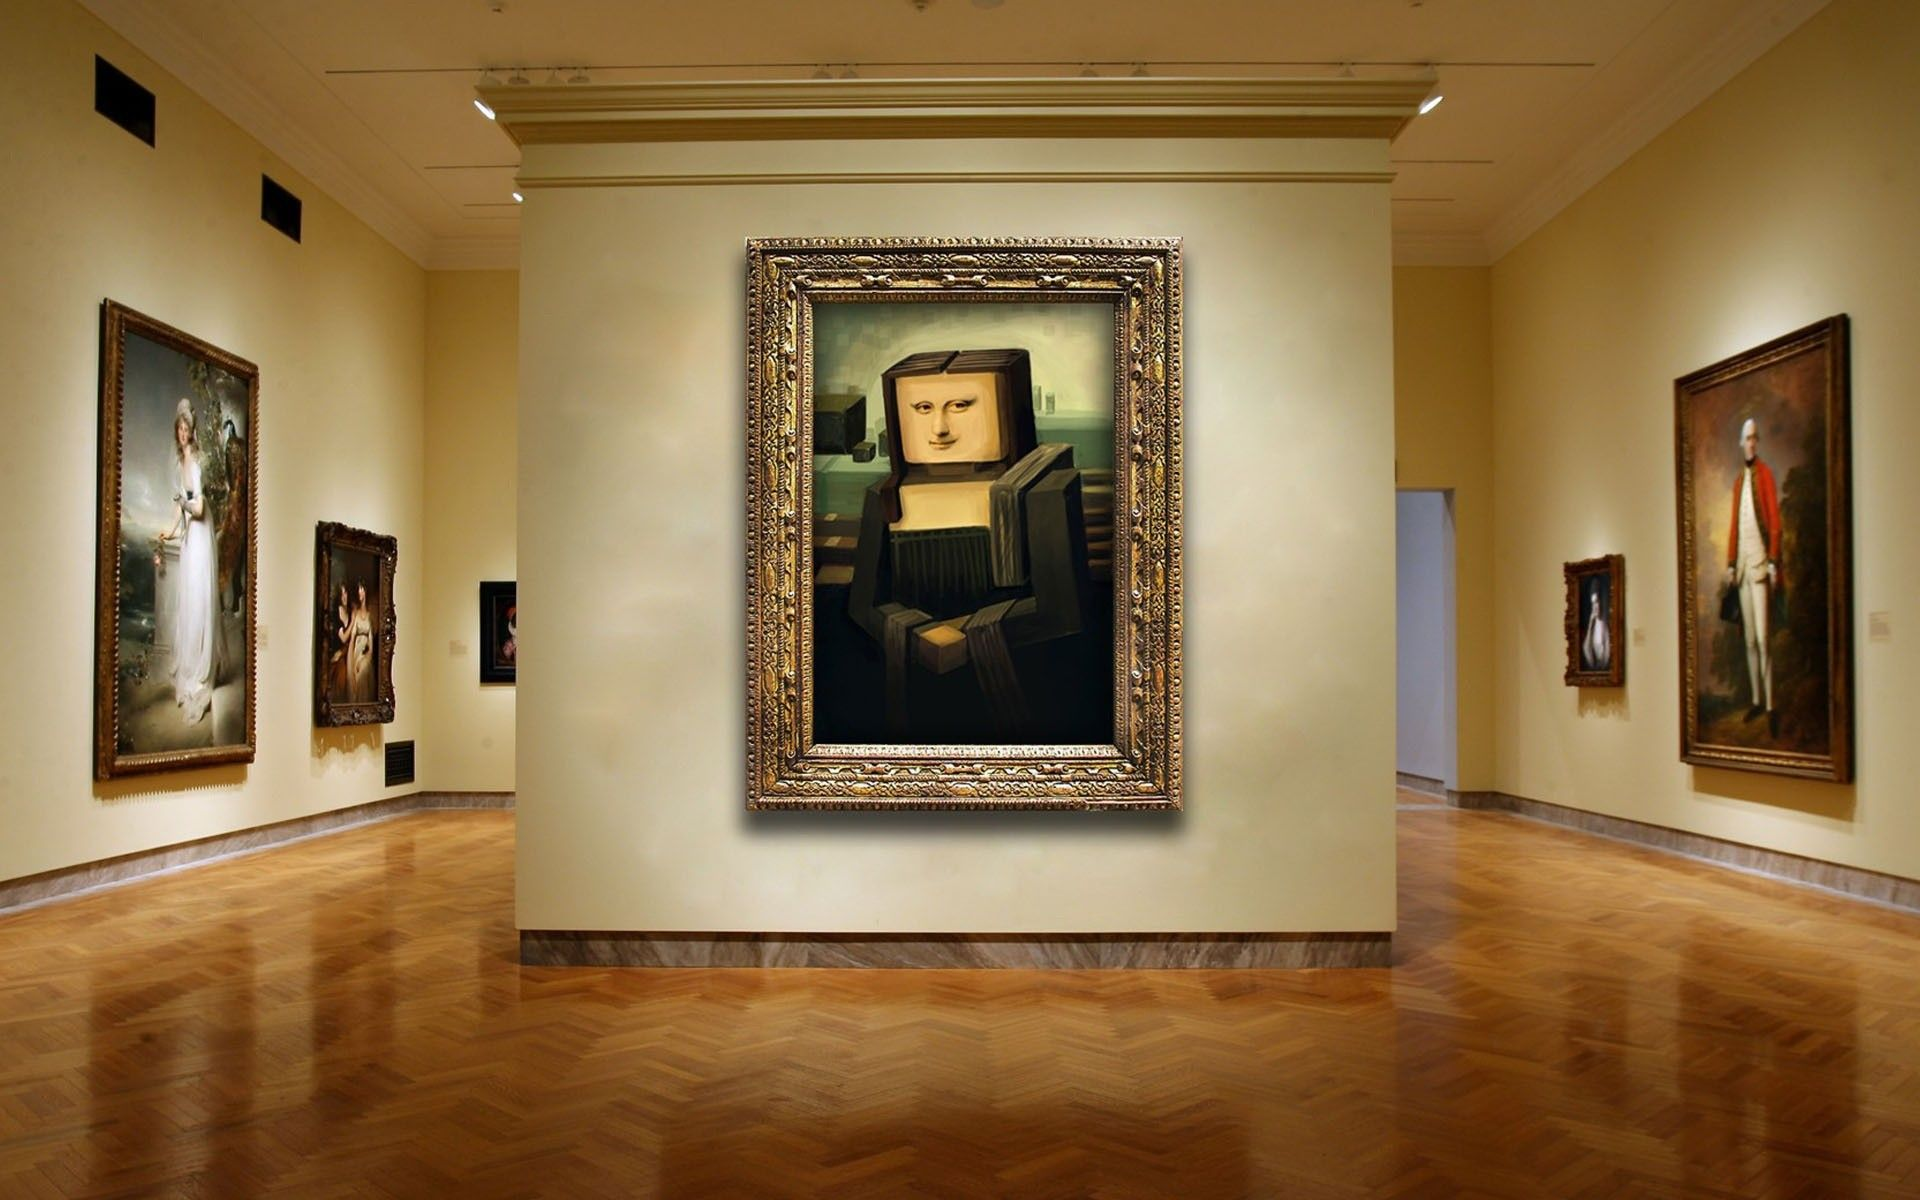 Minecraft Wallpaper For Bedroom Paintings Minecraft Wallpaper 1920x1200 Paintings Minecraft